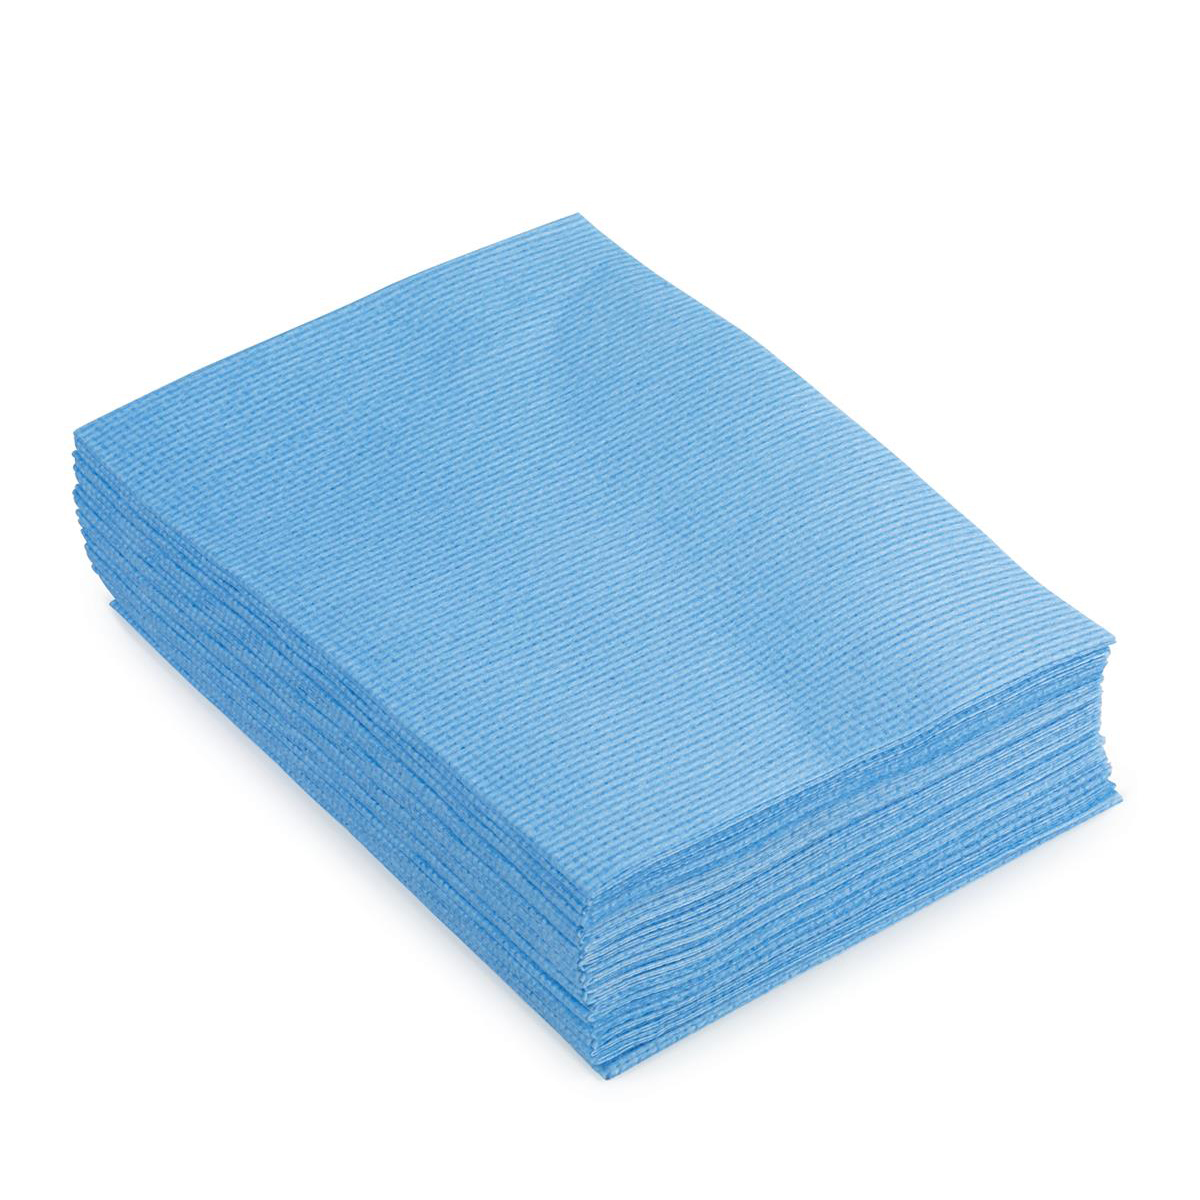 5 Star Facilities Cleaning Cloths Anti-microbial Heavy-duty 76gsm W500xL300mm Blue [Pack 25]